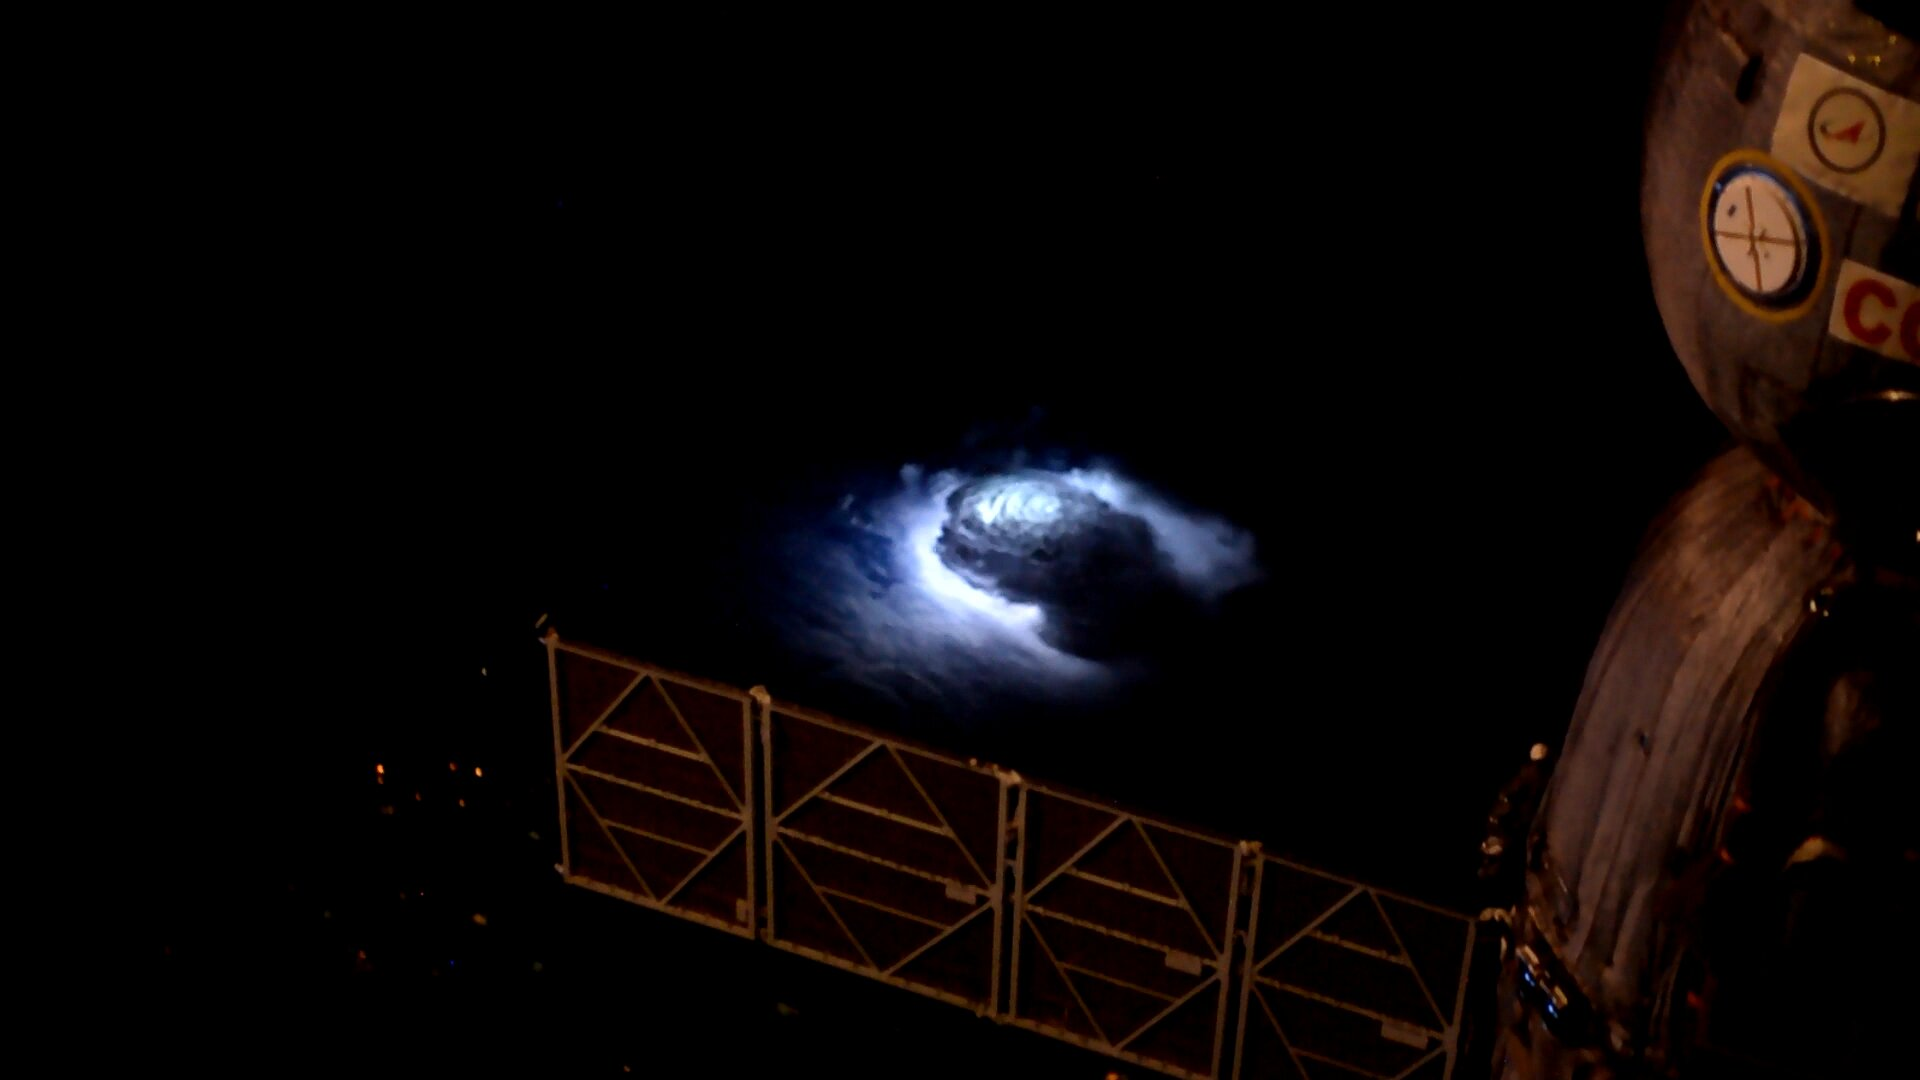 Genesis of blue lightning into the stratosphere detected from ISS